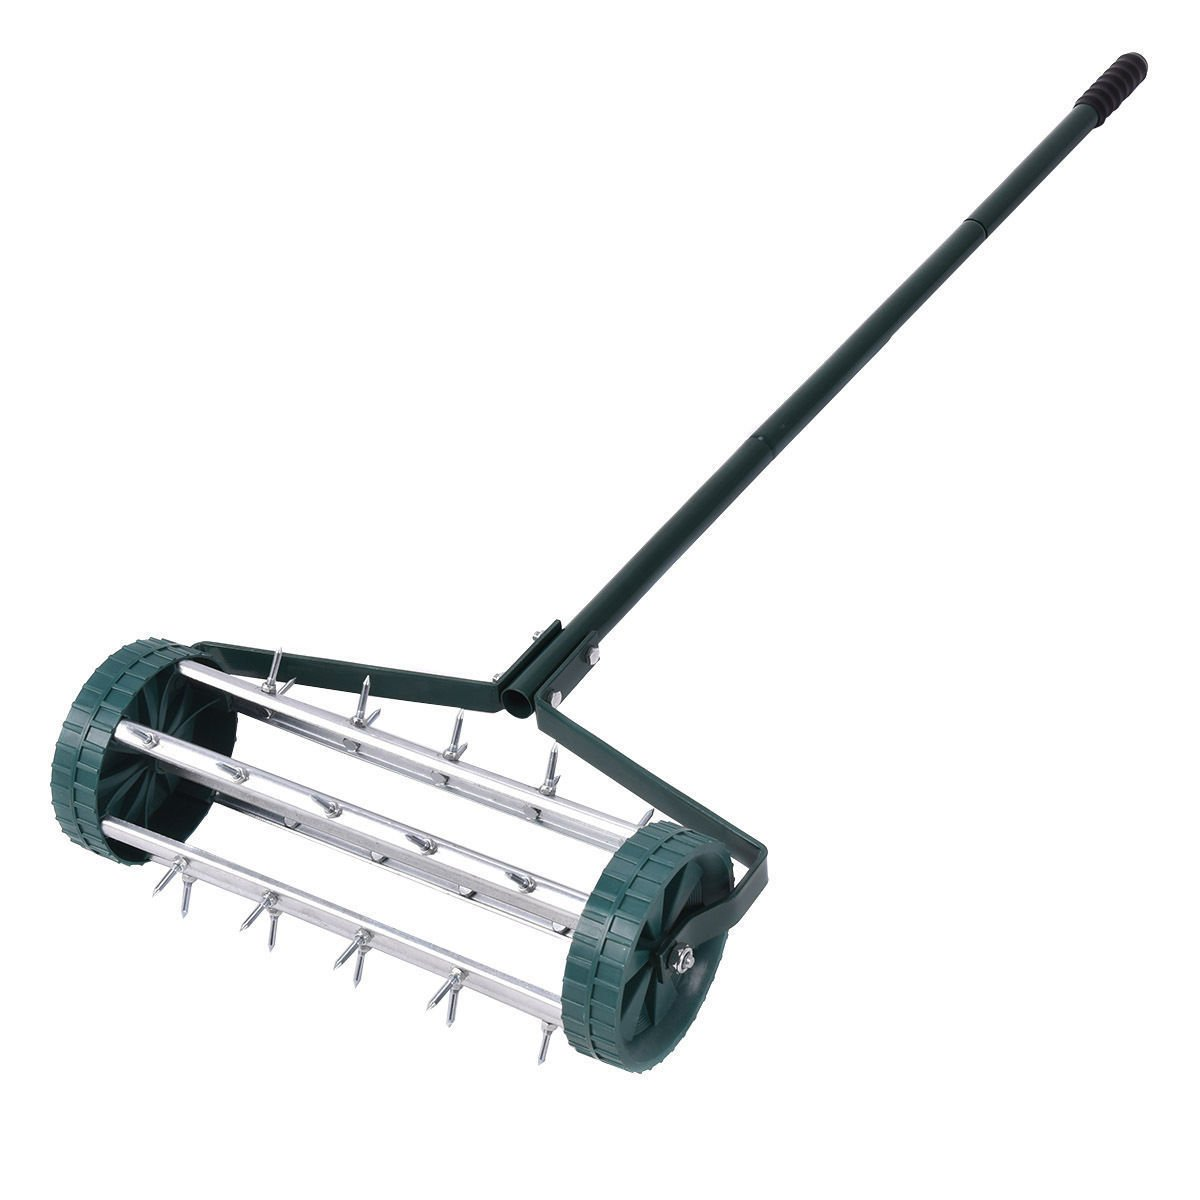 Asher Amada Heavy Duty Rolling Garden Lawn Aerator Roller Home Grass Steel Handle Green New by Asher Amada